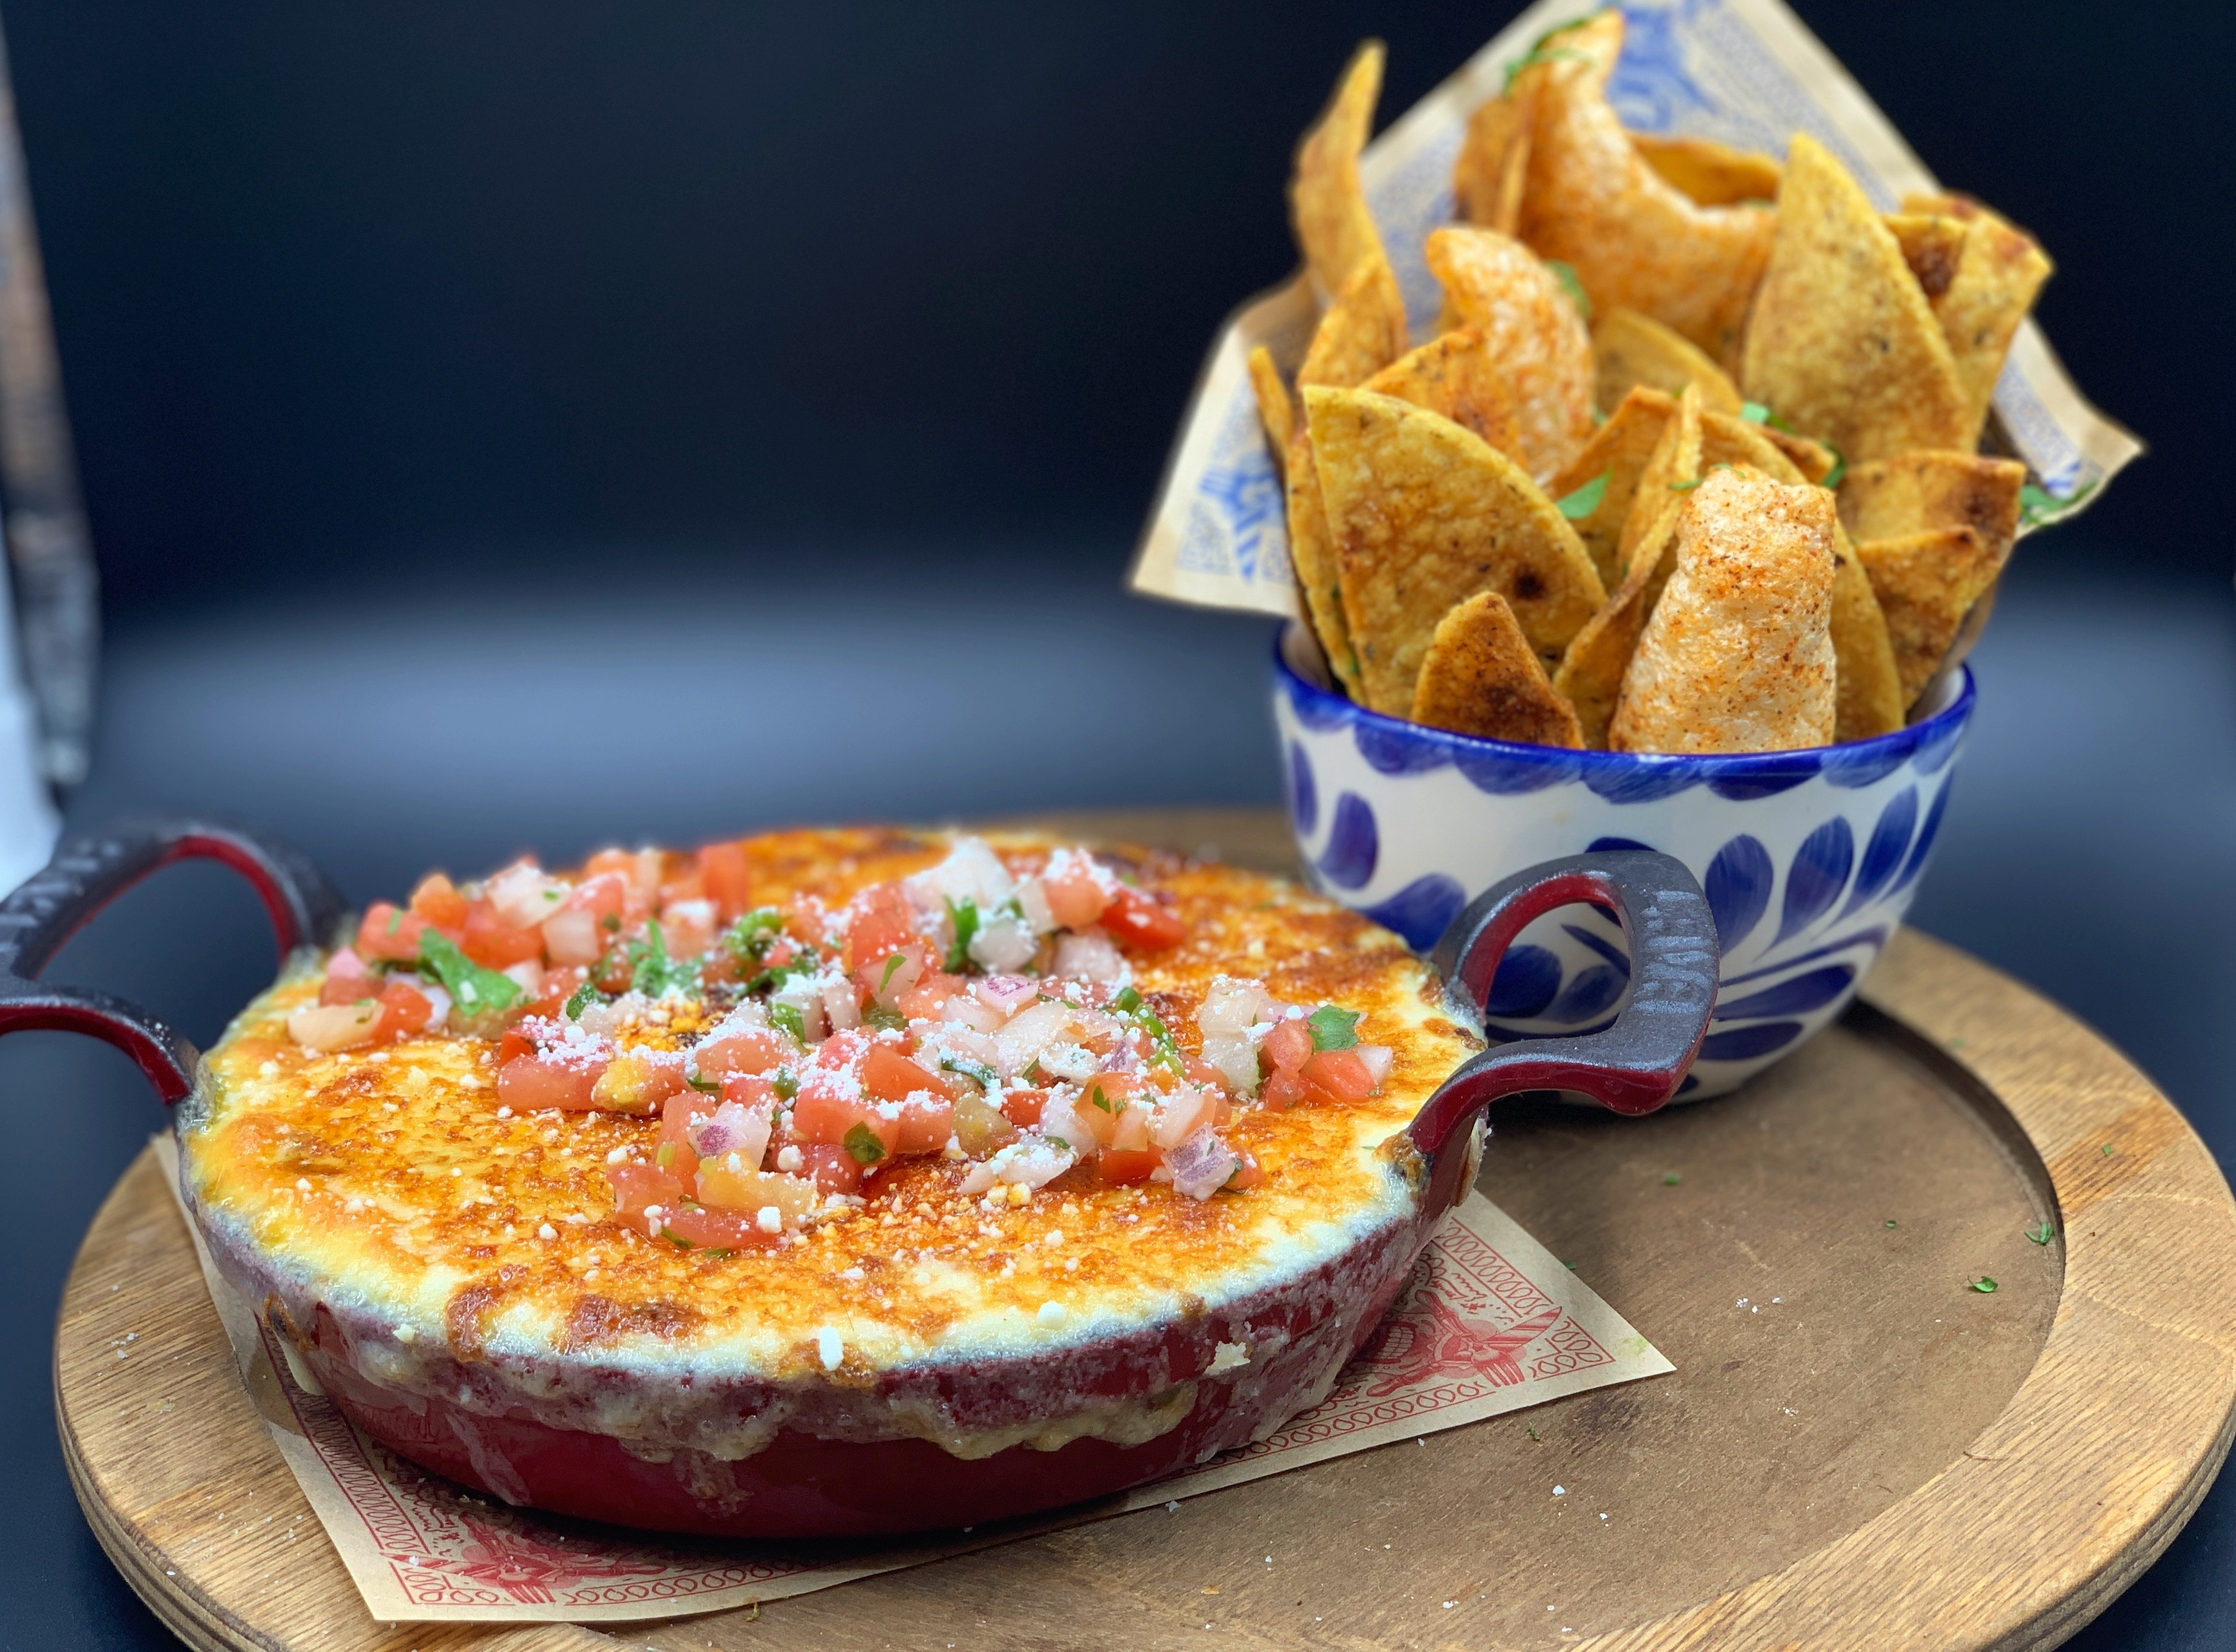 Queso fundido topped with chopped tomatoes and more sits in a small red pan. There's a blue and white bowl of tortilla chips to the right, and both vessels sit on a wooden tray.